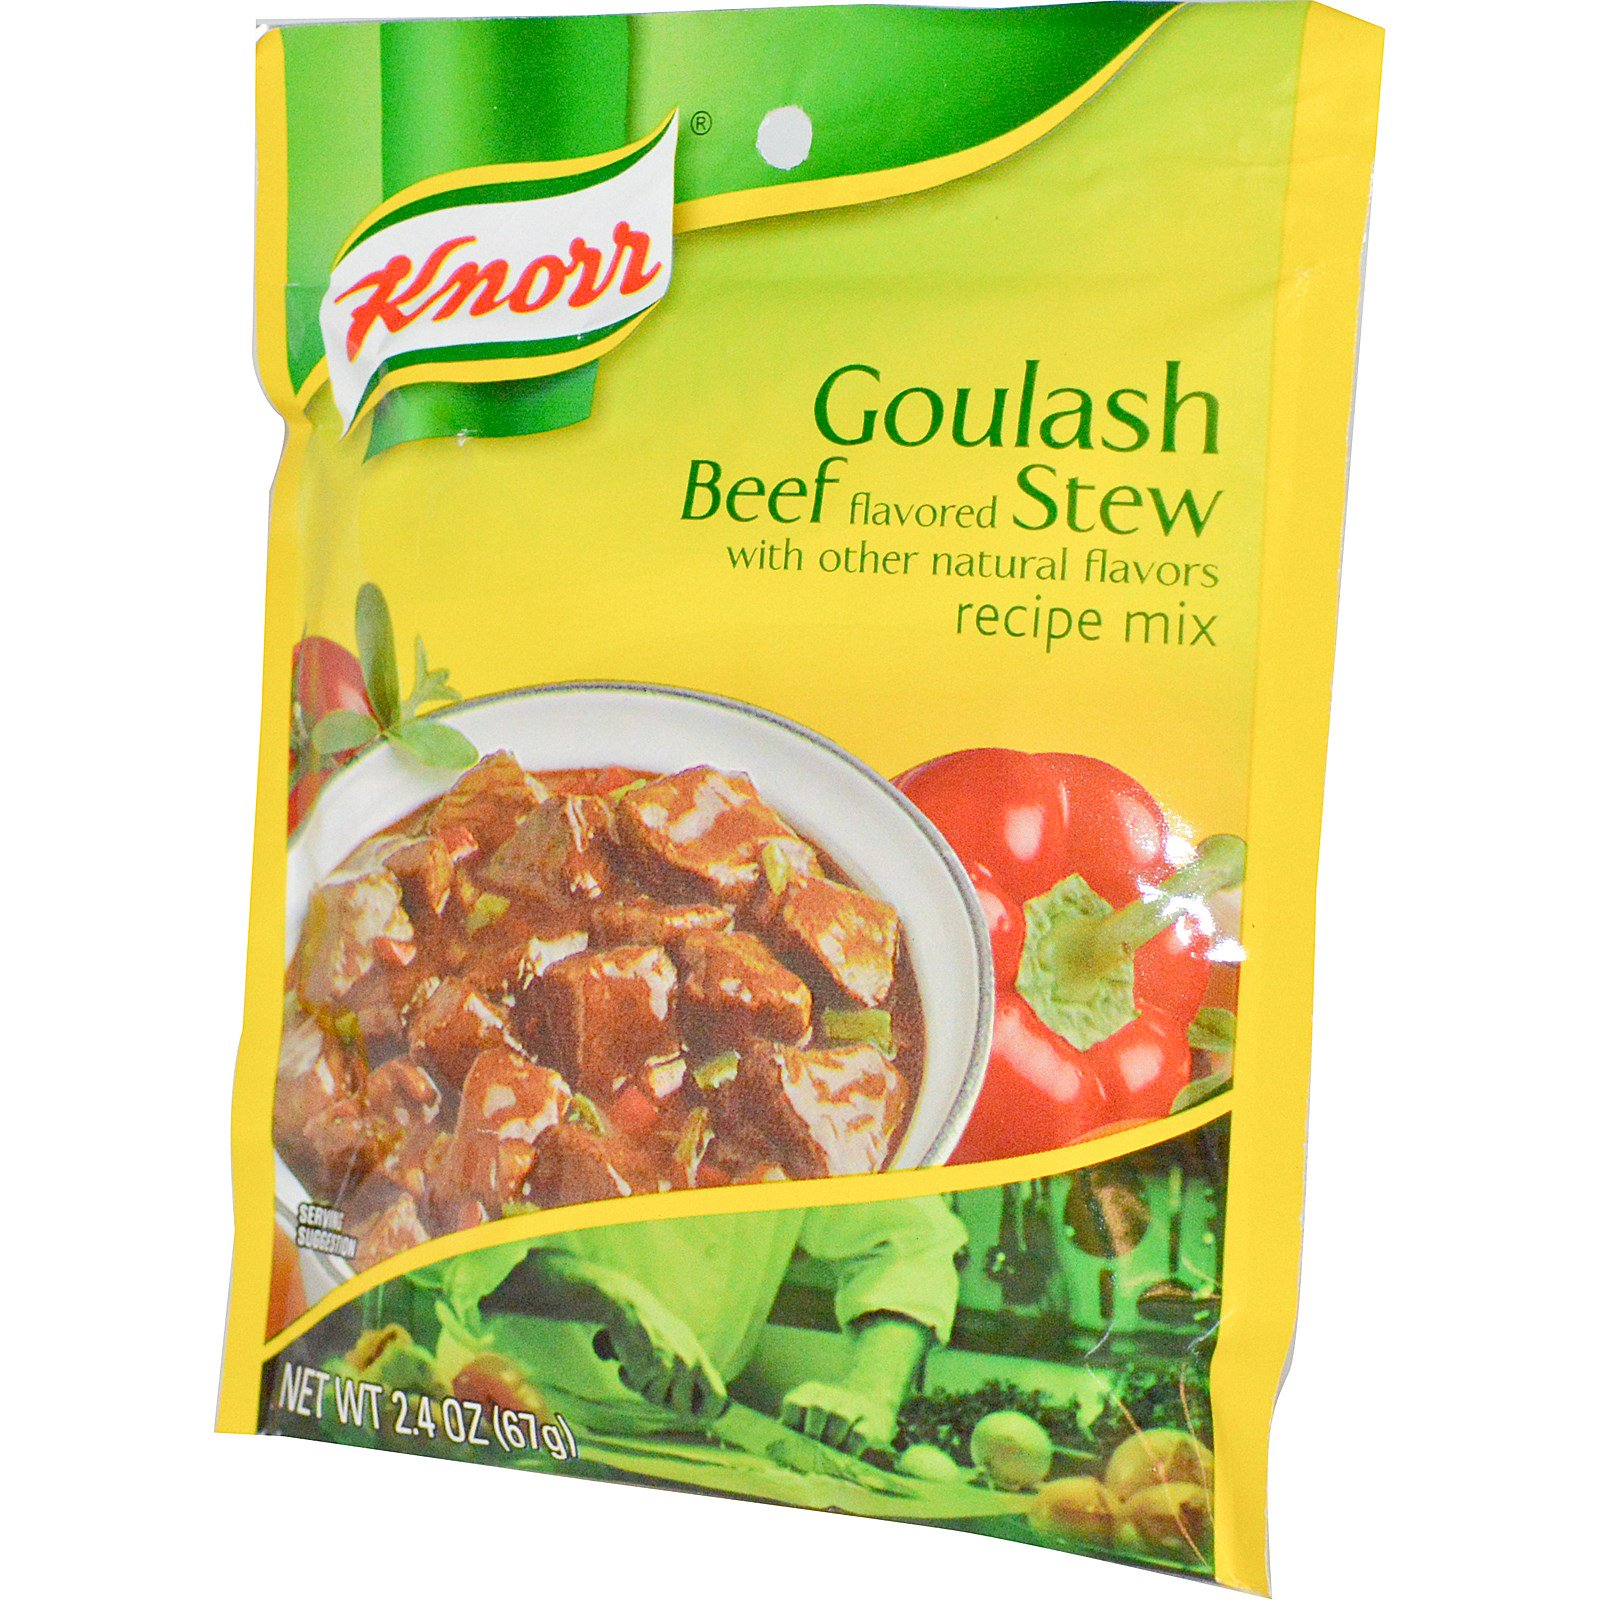 knorr goulash beef stew recipe mix 2 4 oz 67 g. Black Bedroom Furniture Sets. Home Design Ideas